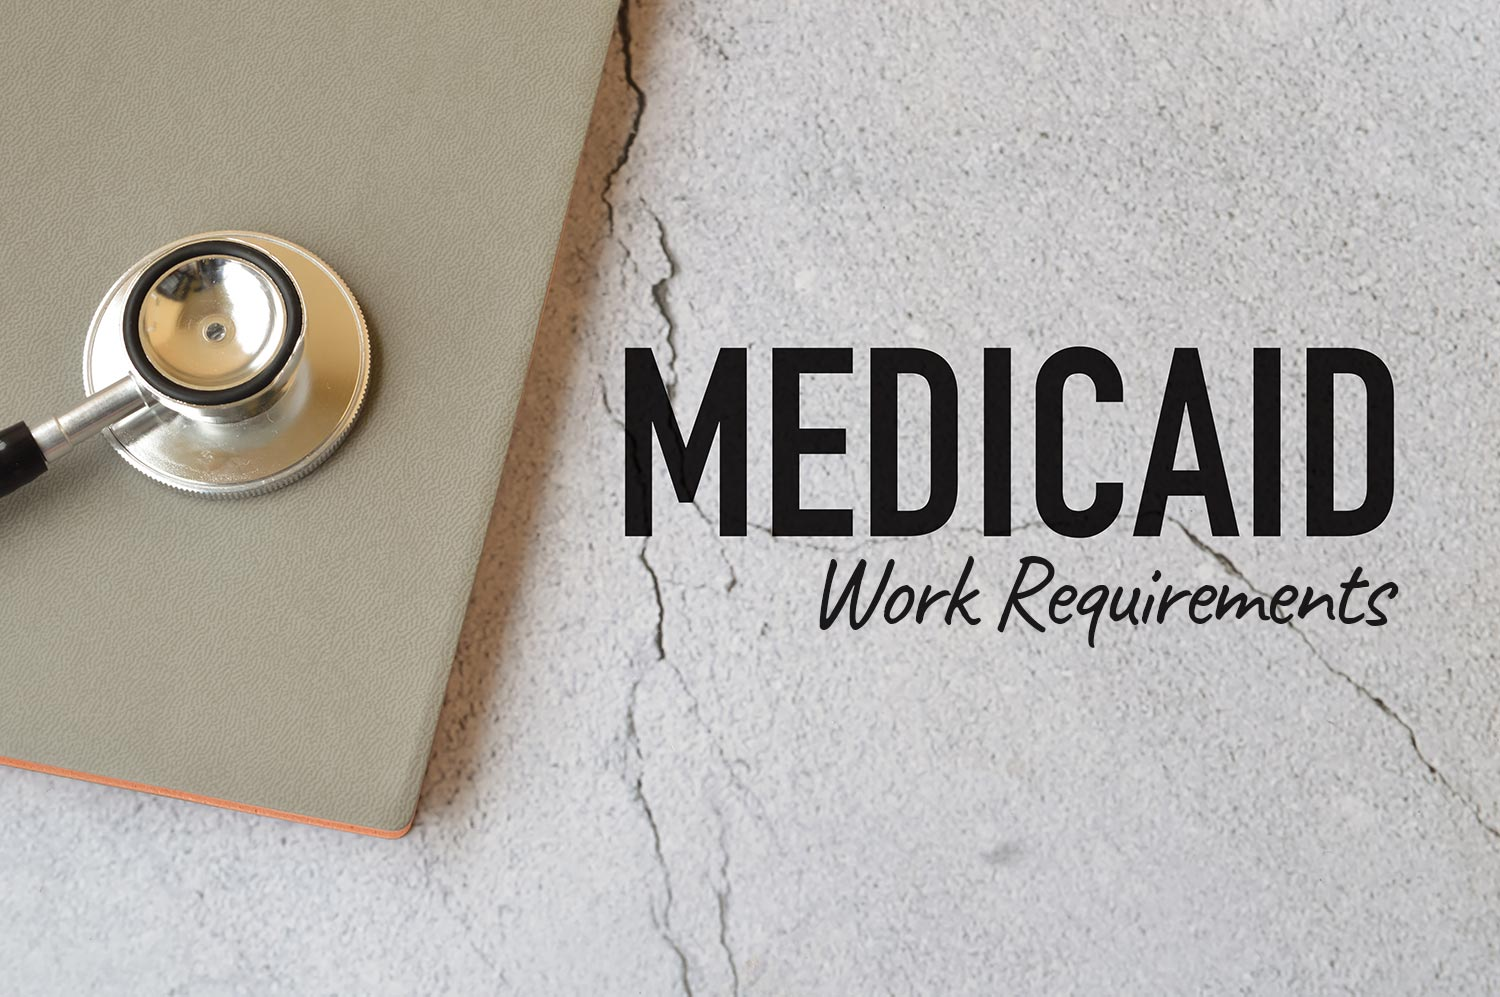 Medicaid Work Requirements